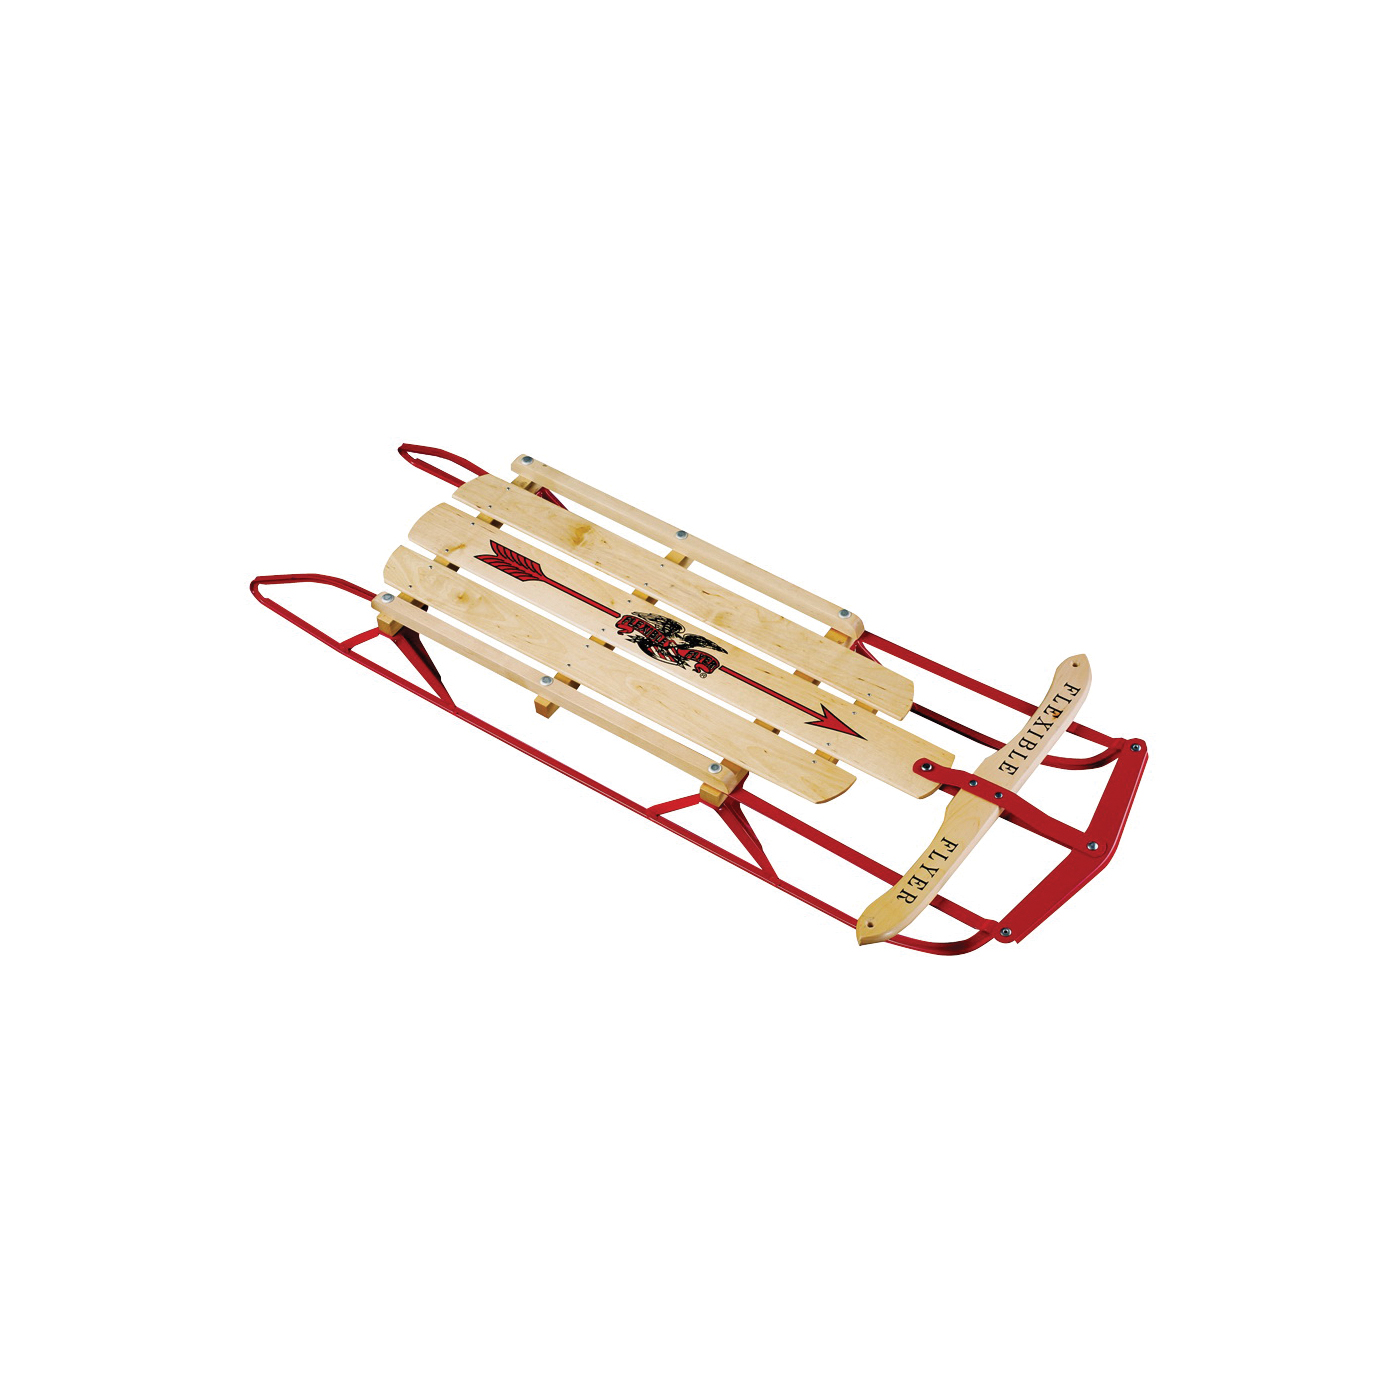 Picture of PARICON 1048 Runner Sled, Flexible Flyer, 5-Years Old and Up Capacity, Steel, Red